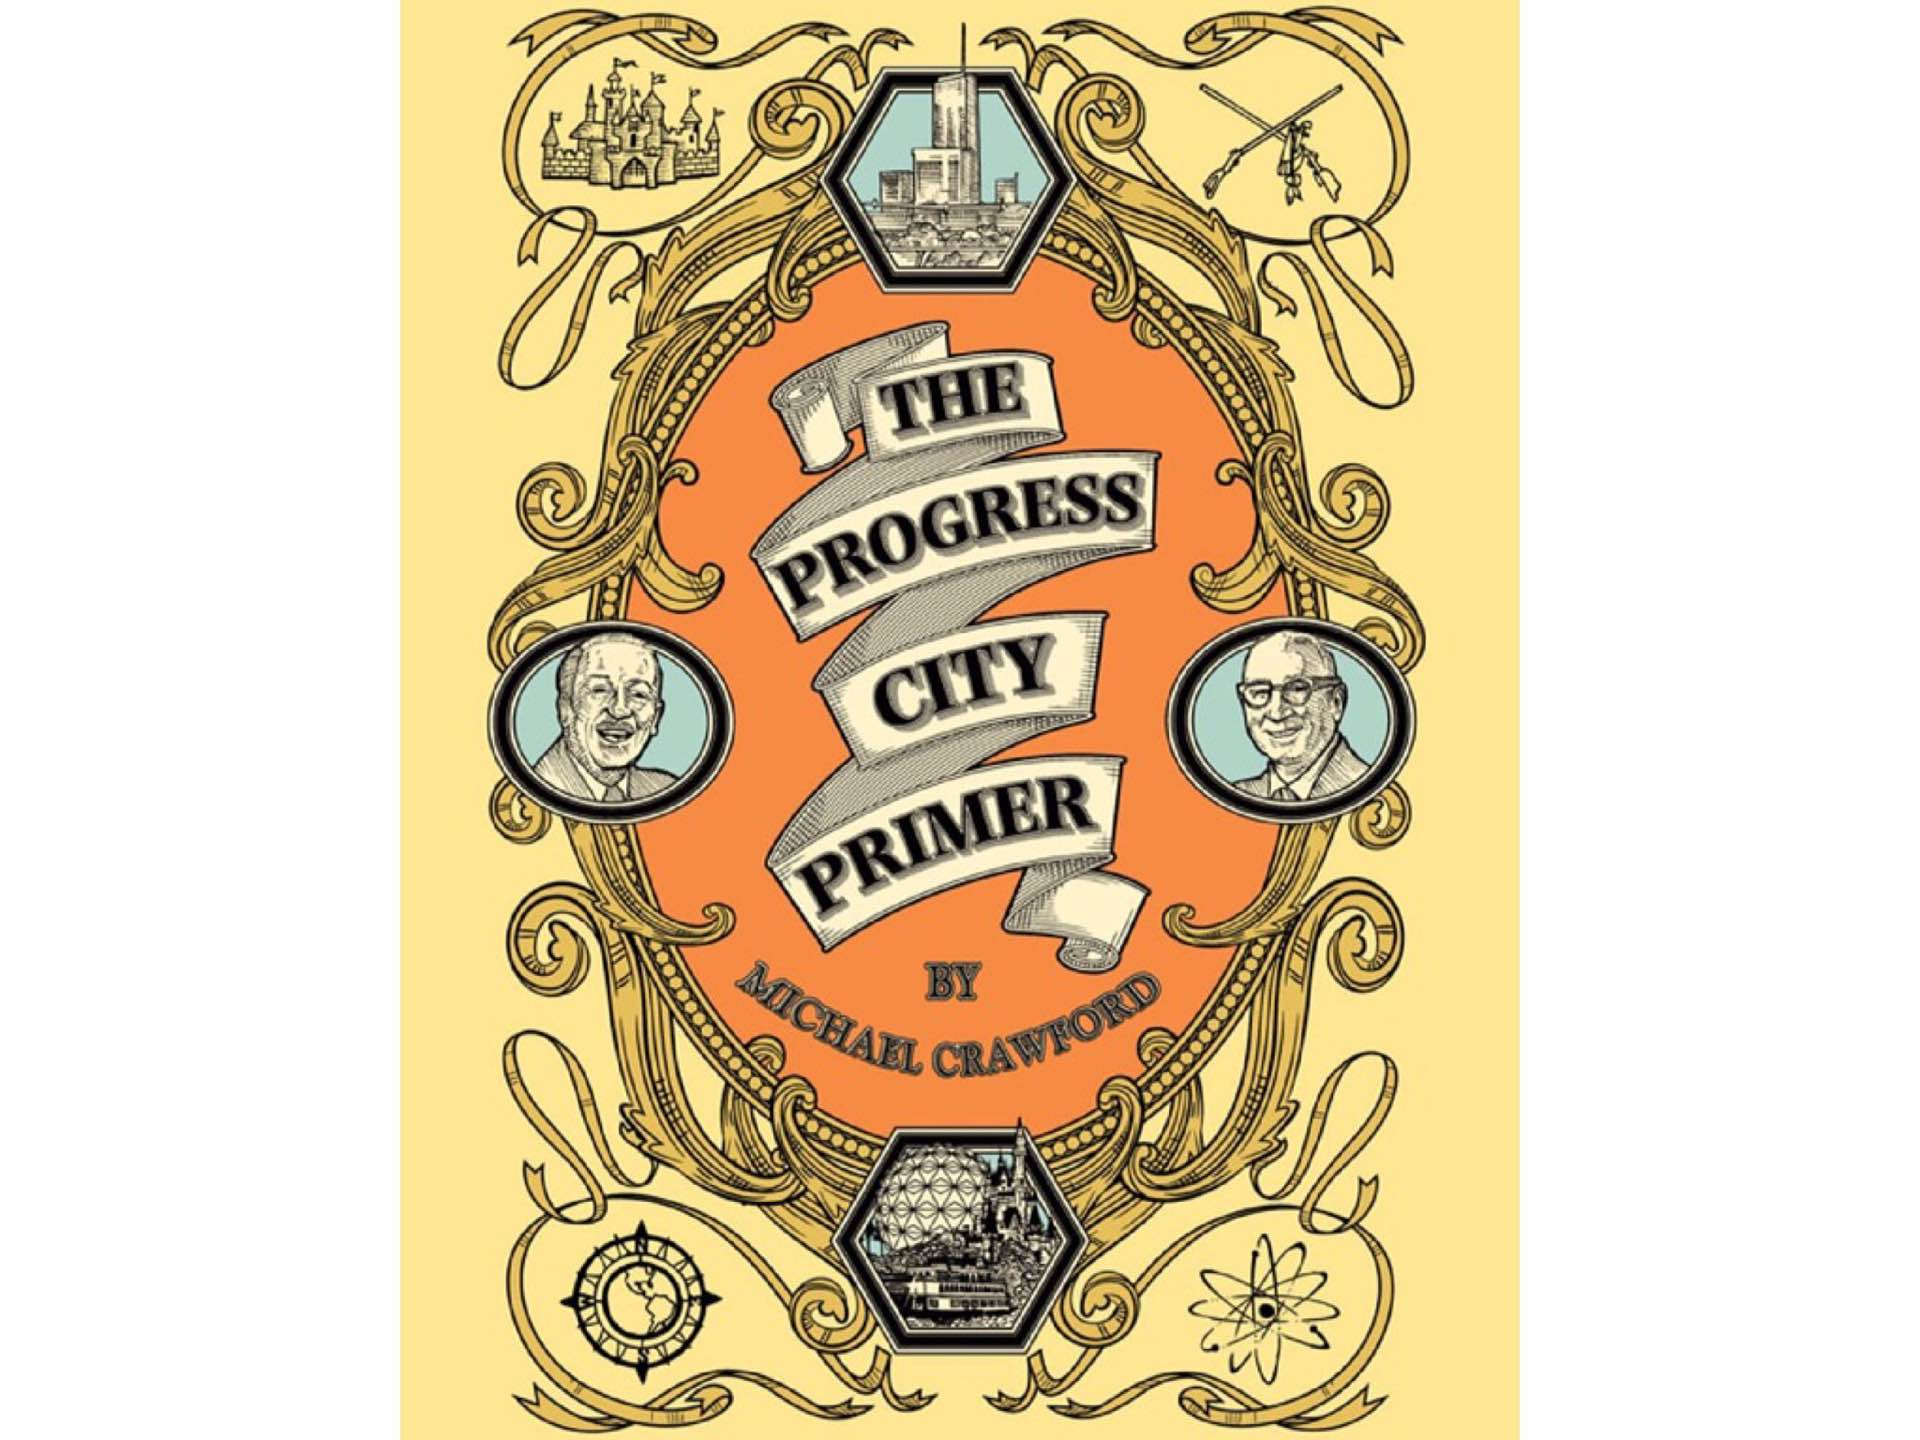 the-progress-city-primer-by-michael-crawford